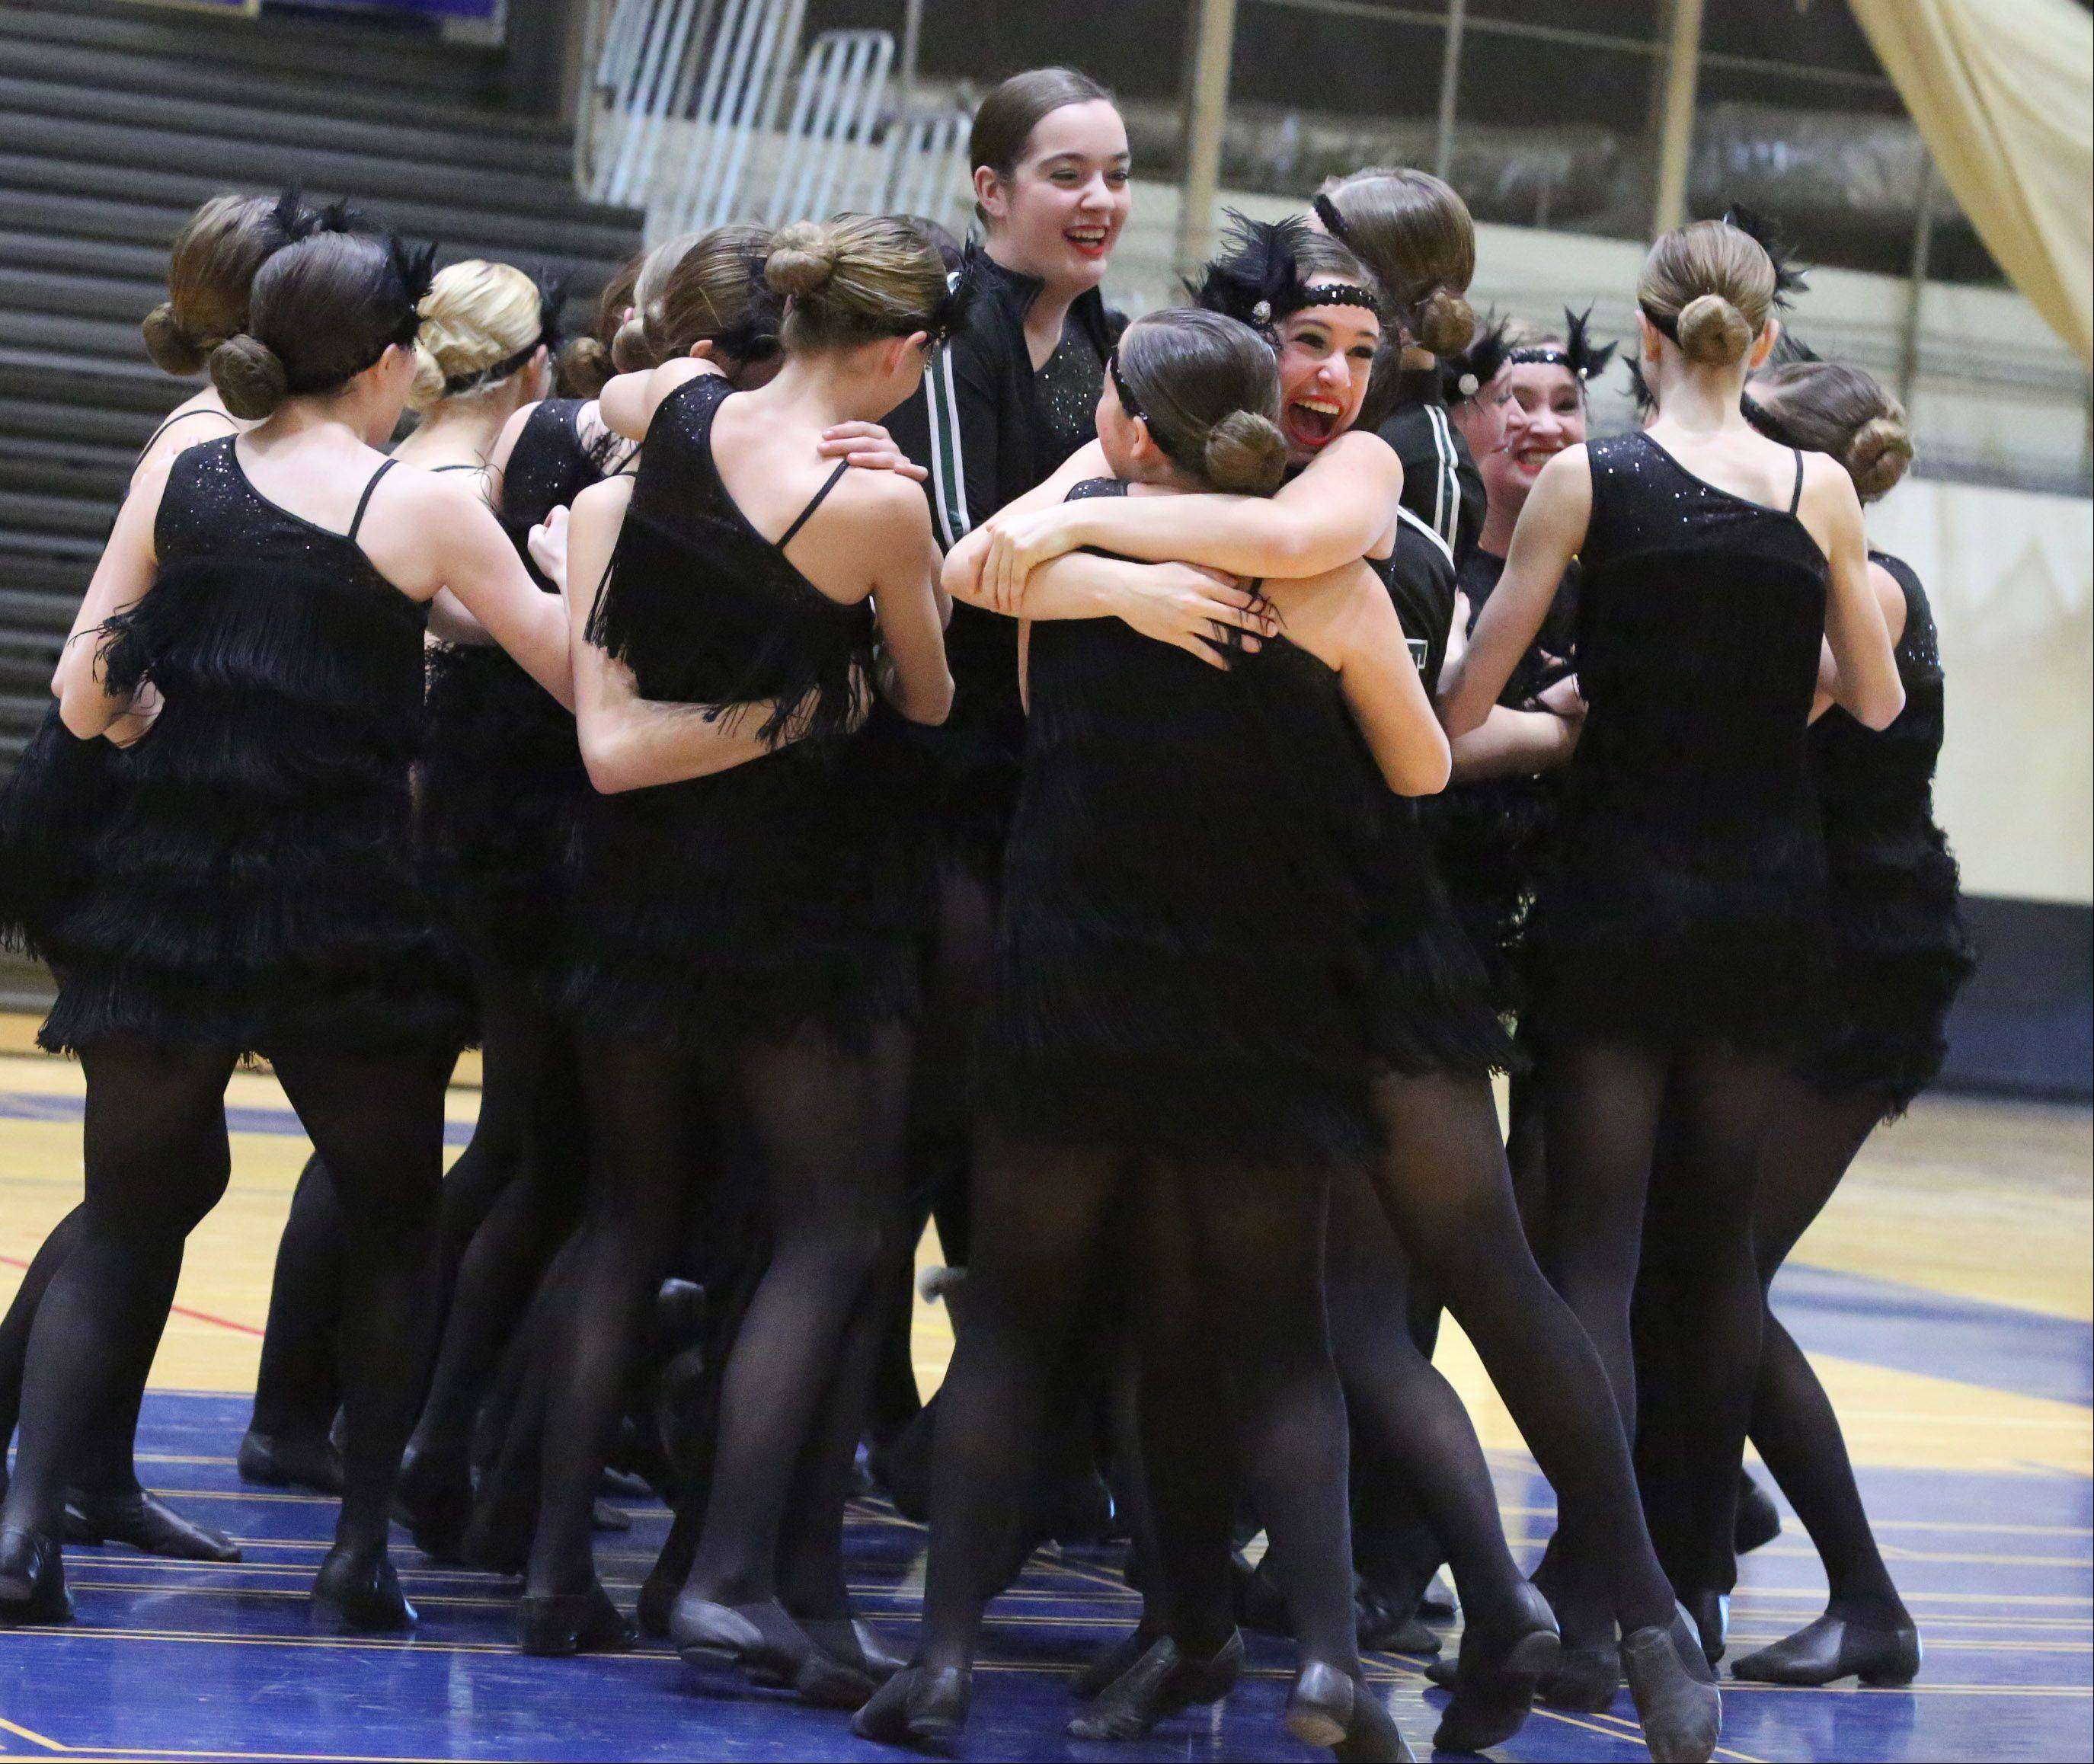 Glenbard West High School's dance team celebrates placing at the IHSA competitive dance sectional at Glenbrook South High School on Saturday in Glenview.